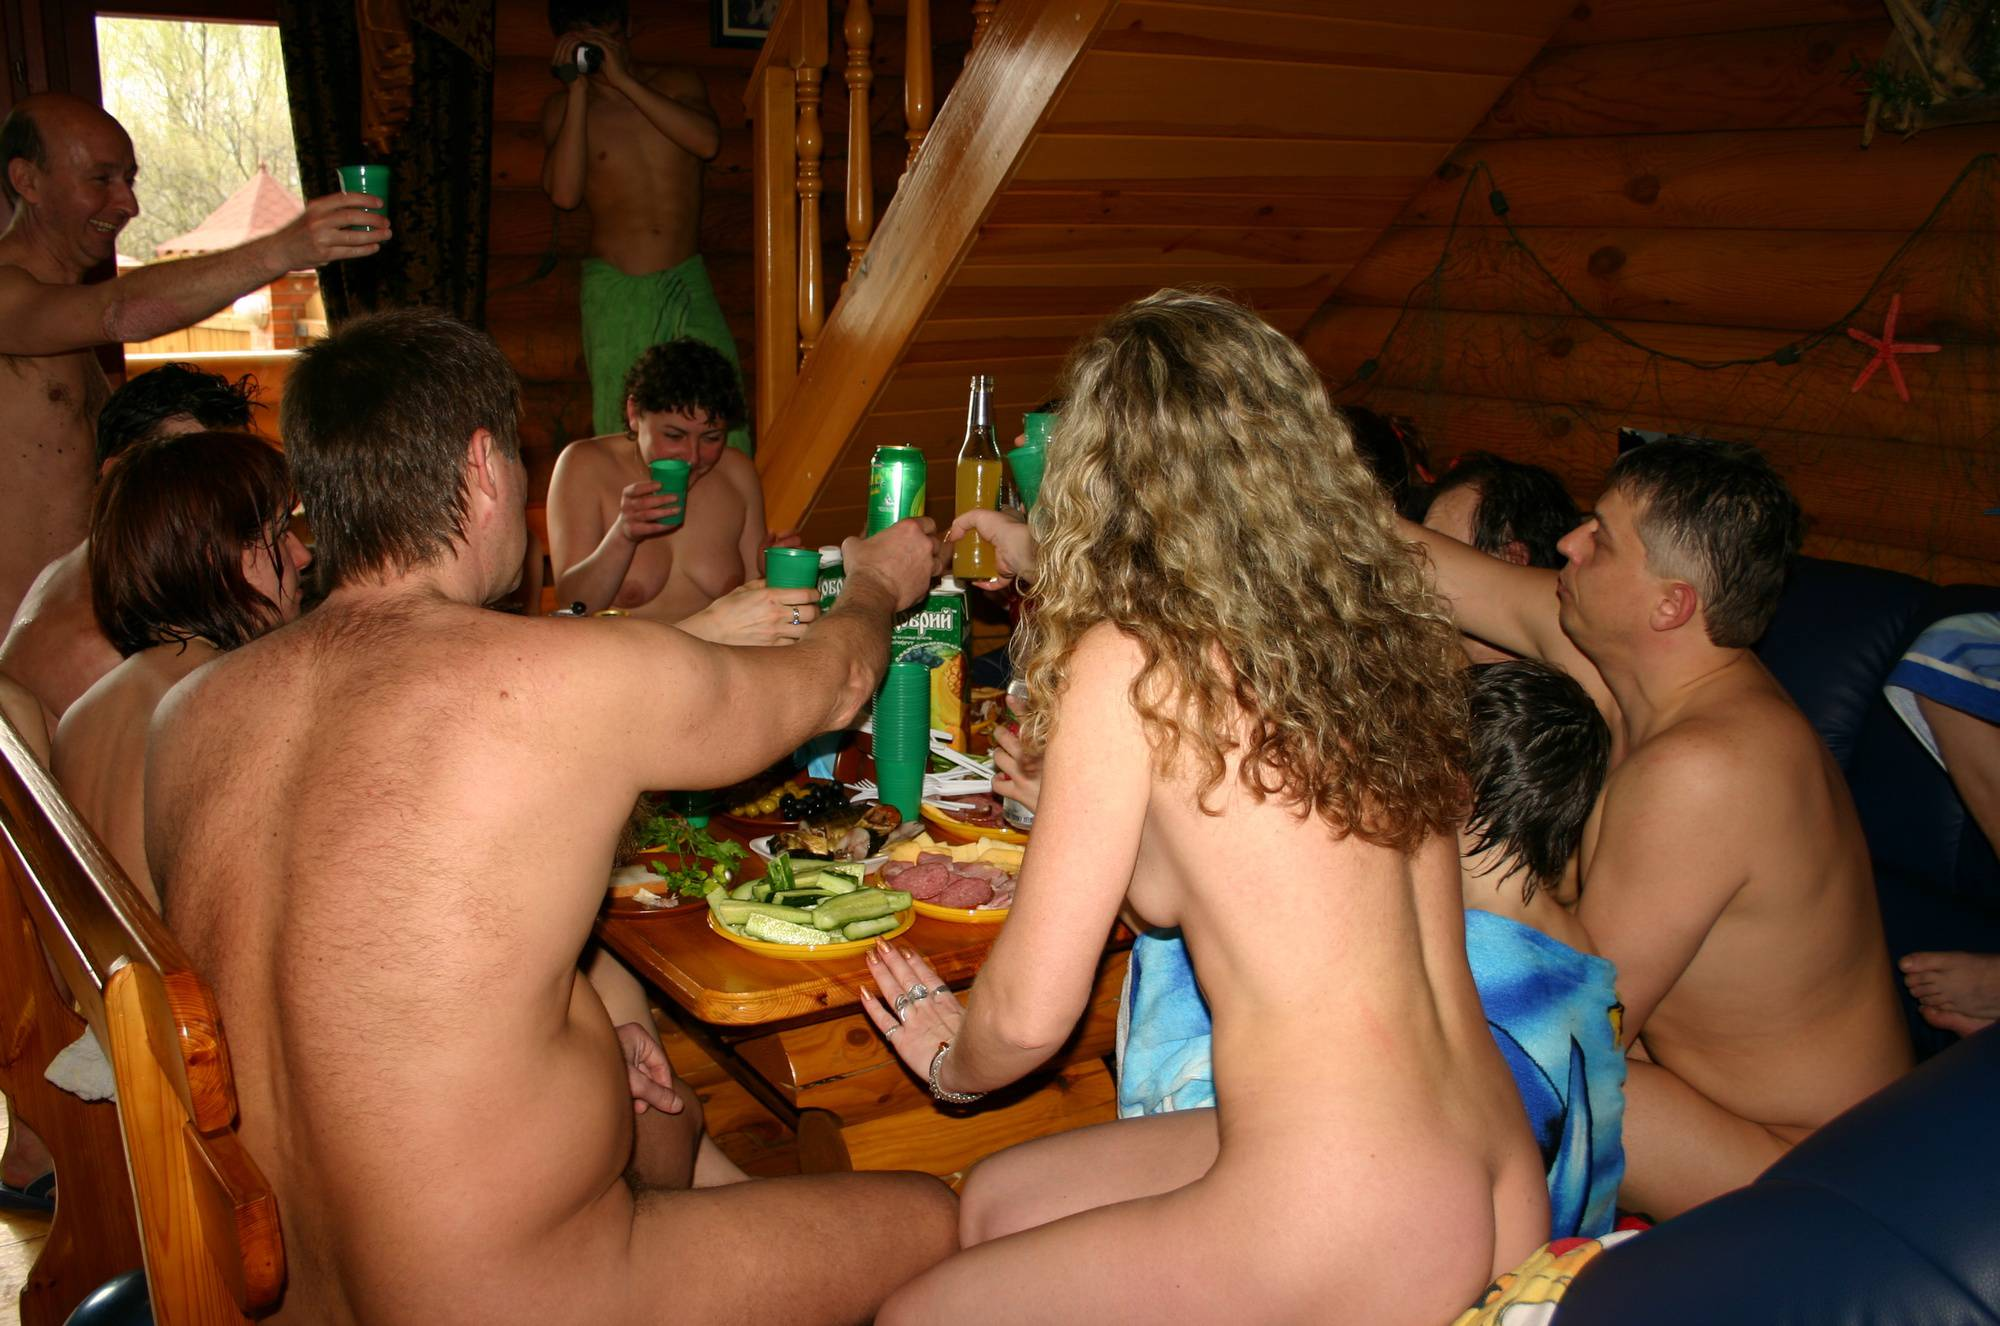 Nudist Pics Easter Egg Hatch and Dinner - 1